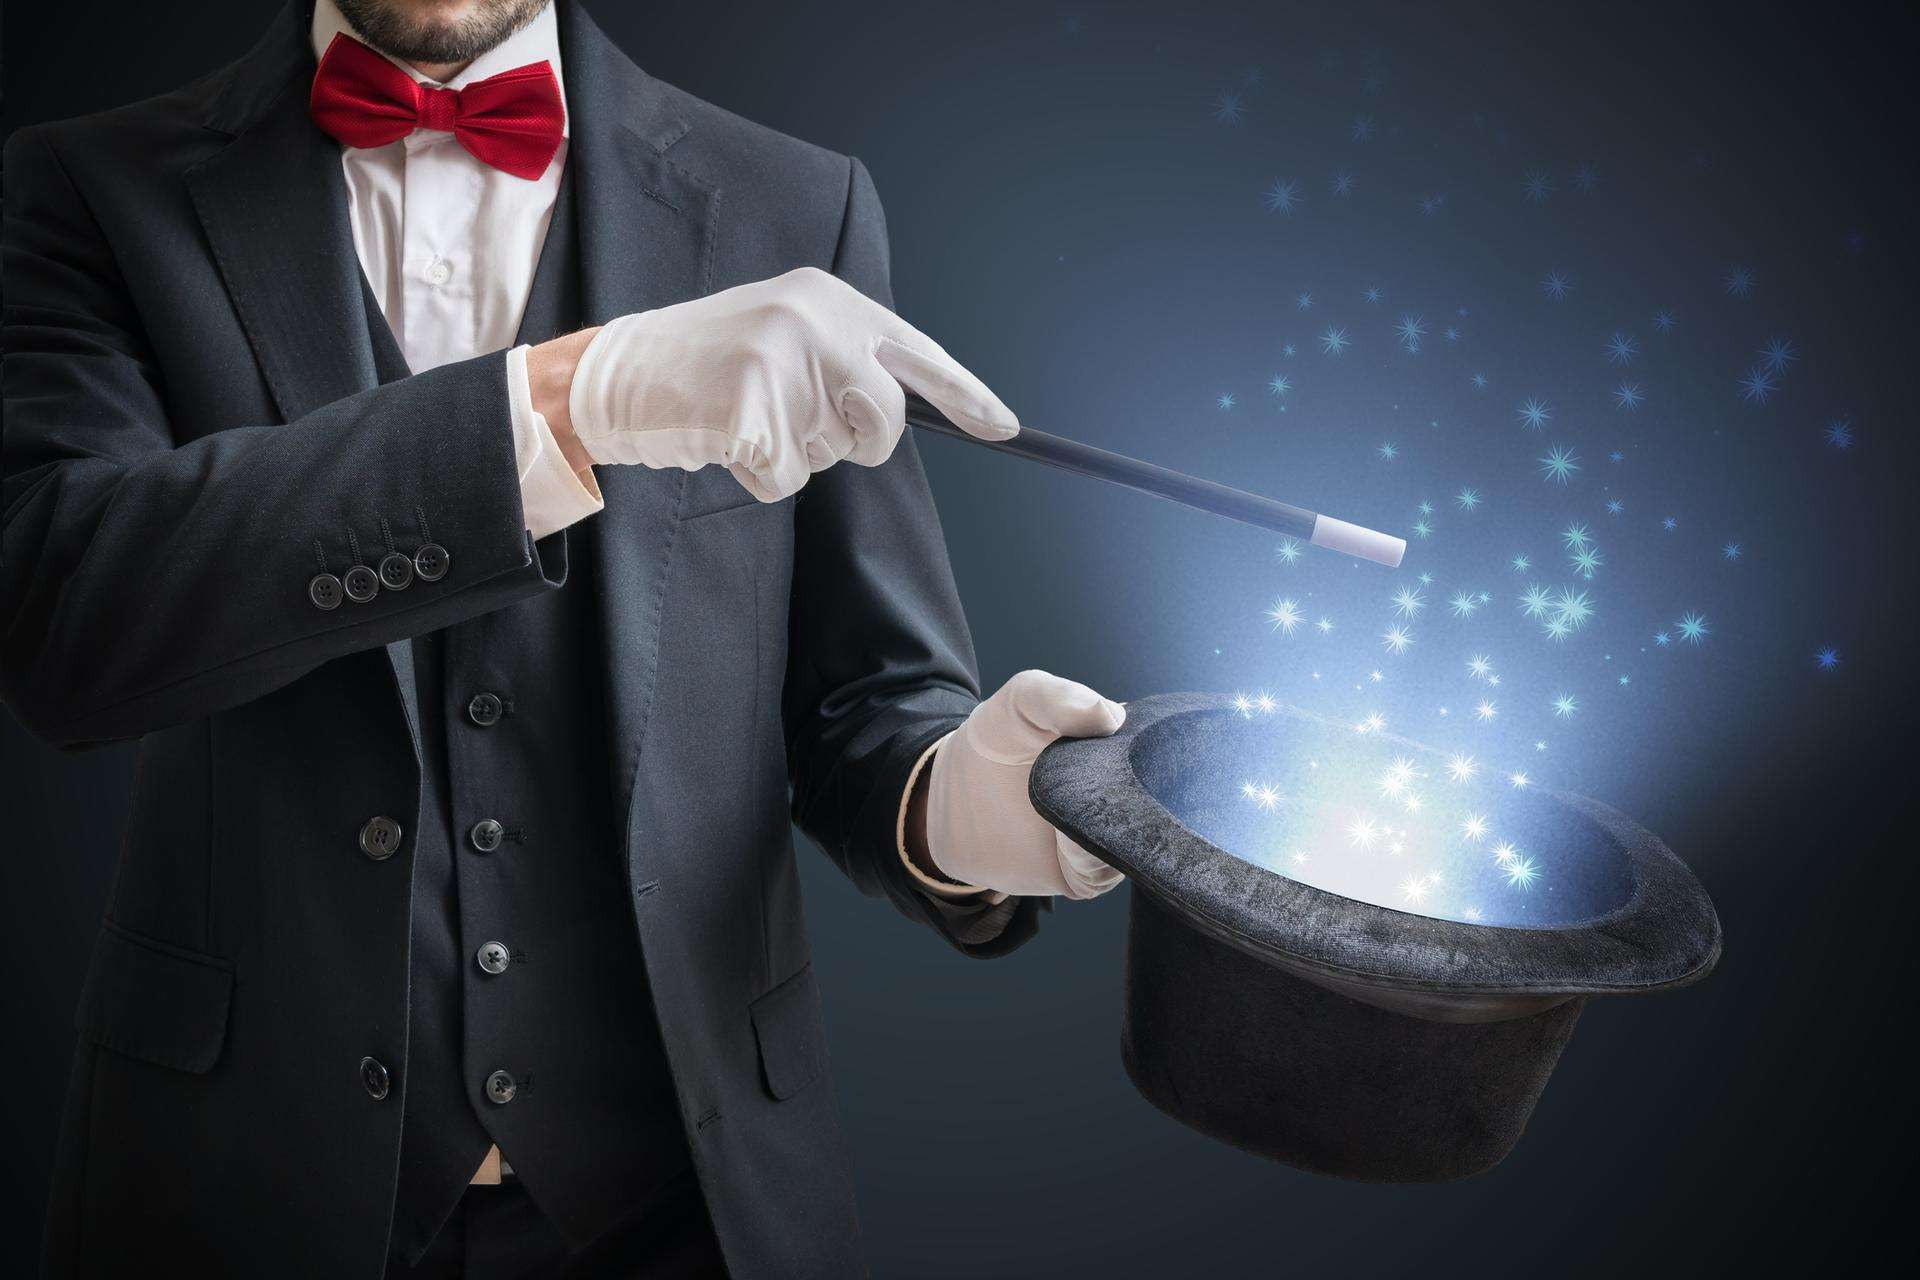 Magician tapping his hat with a wand